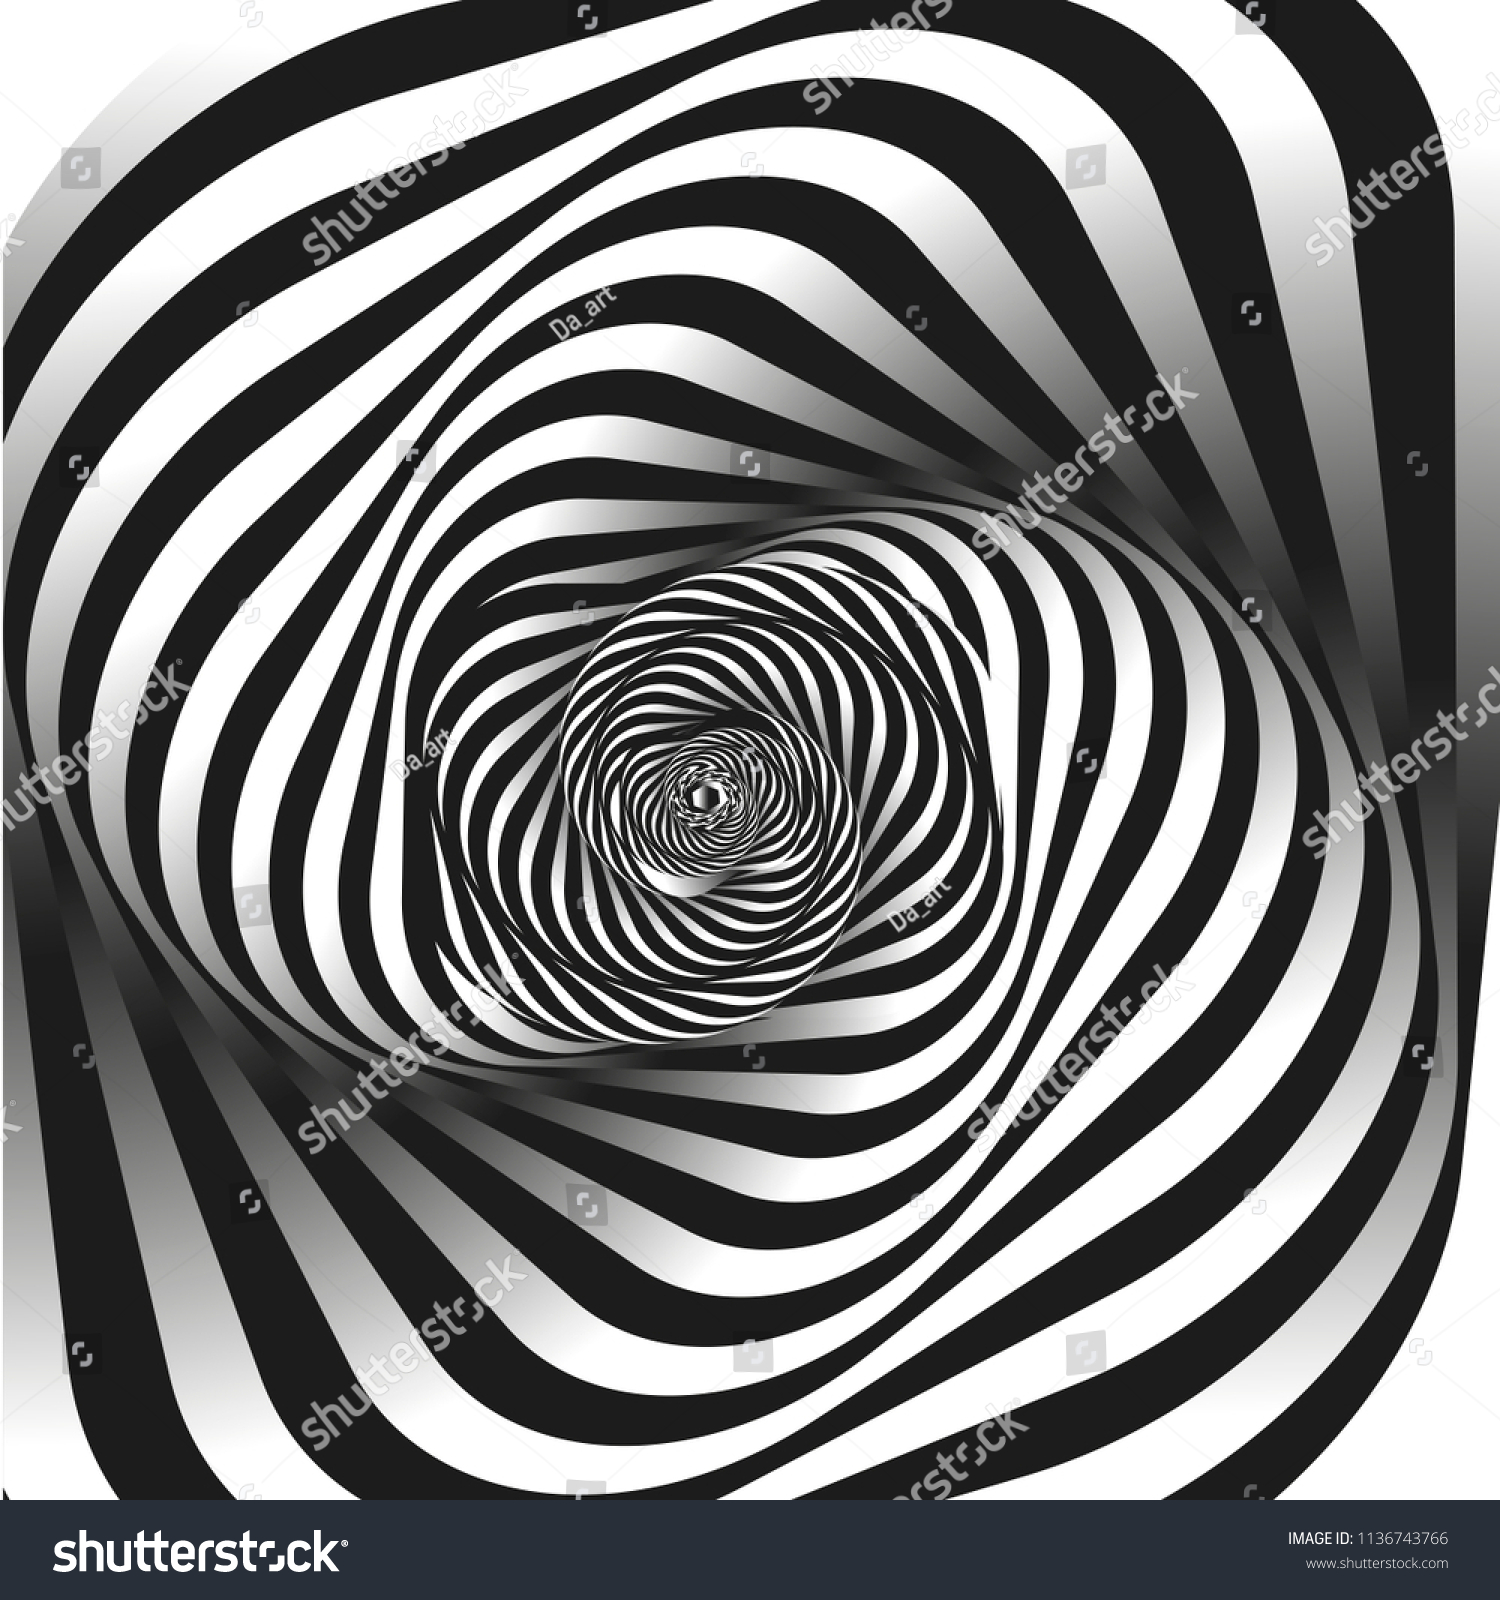 Black and white fractal background escher style images in the style of optical visual